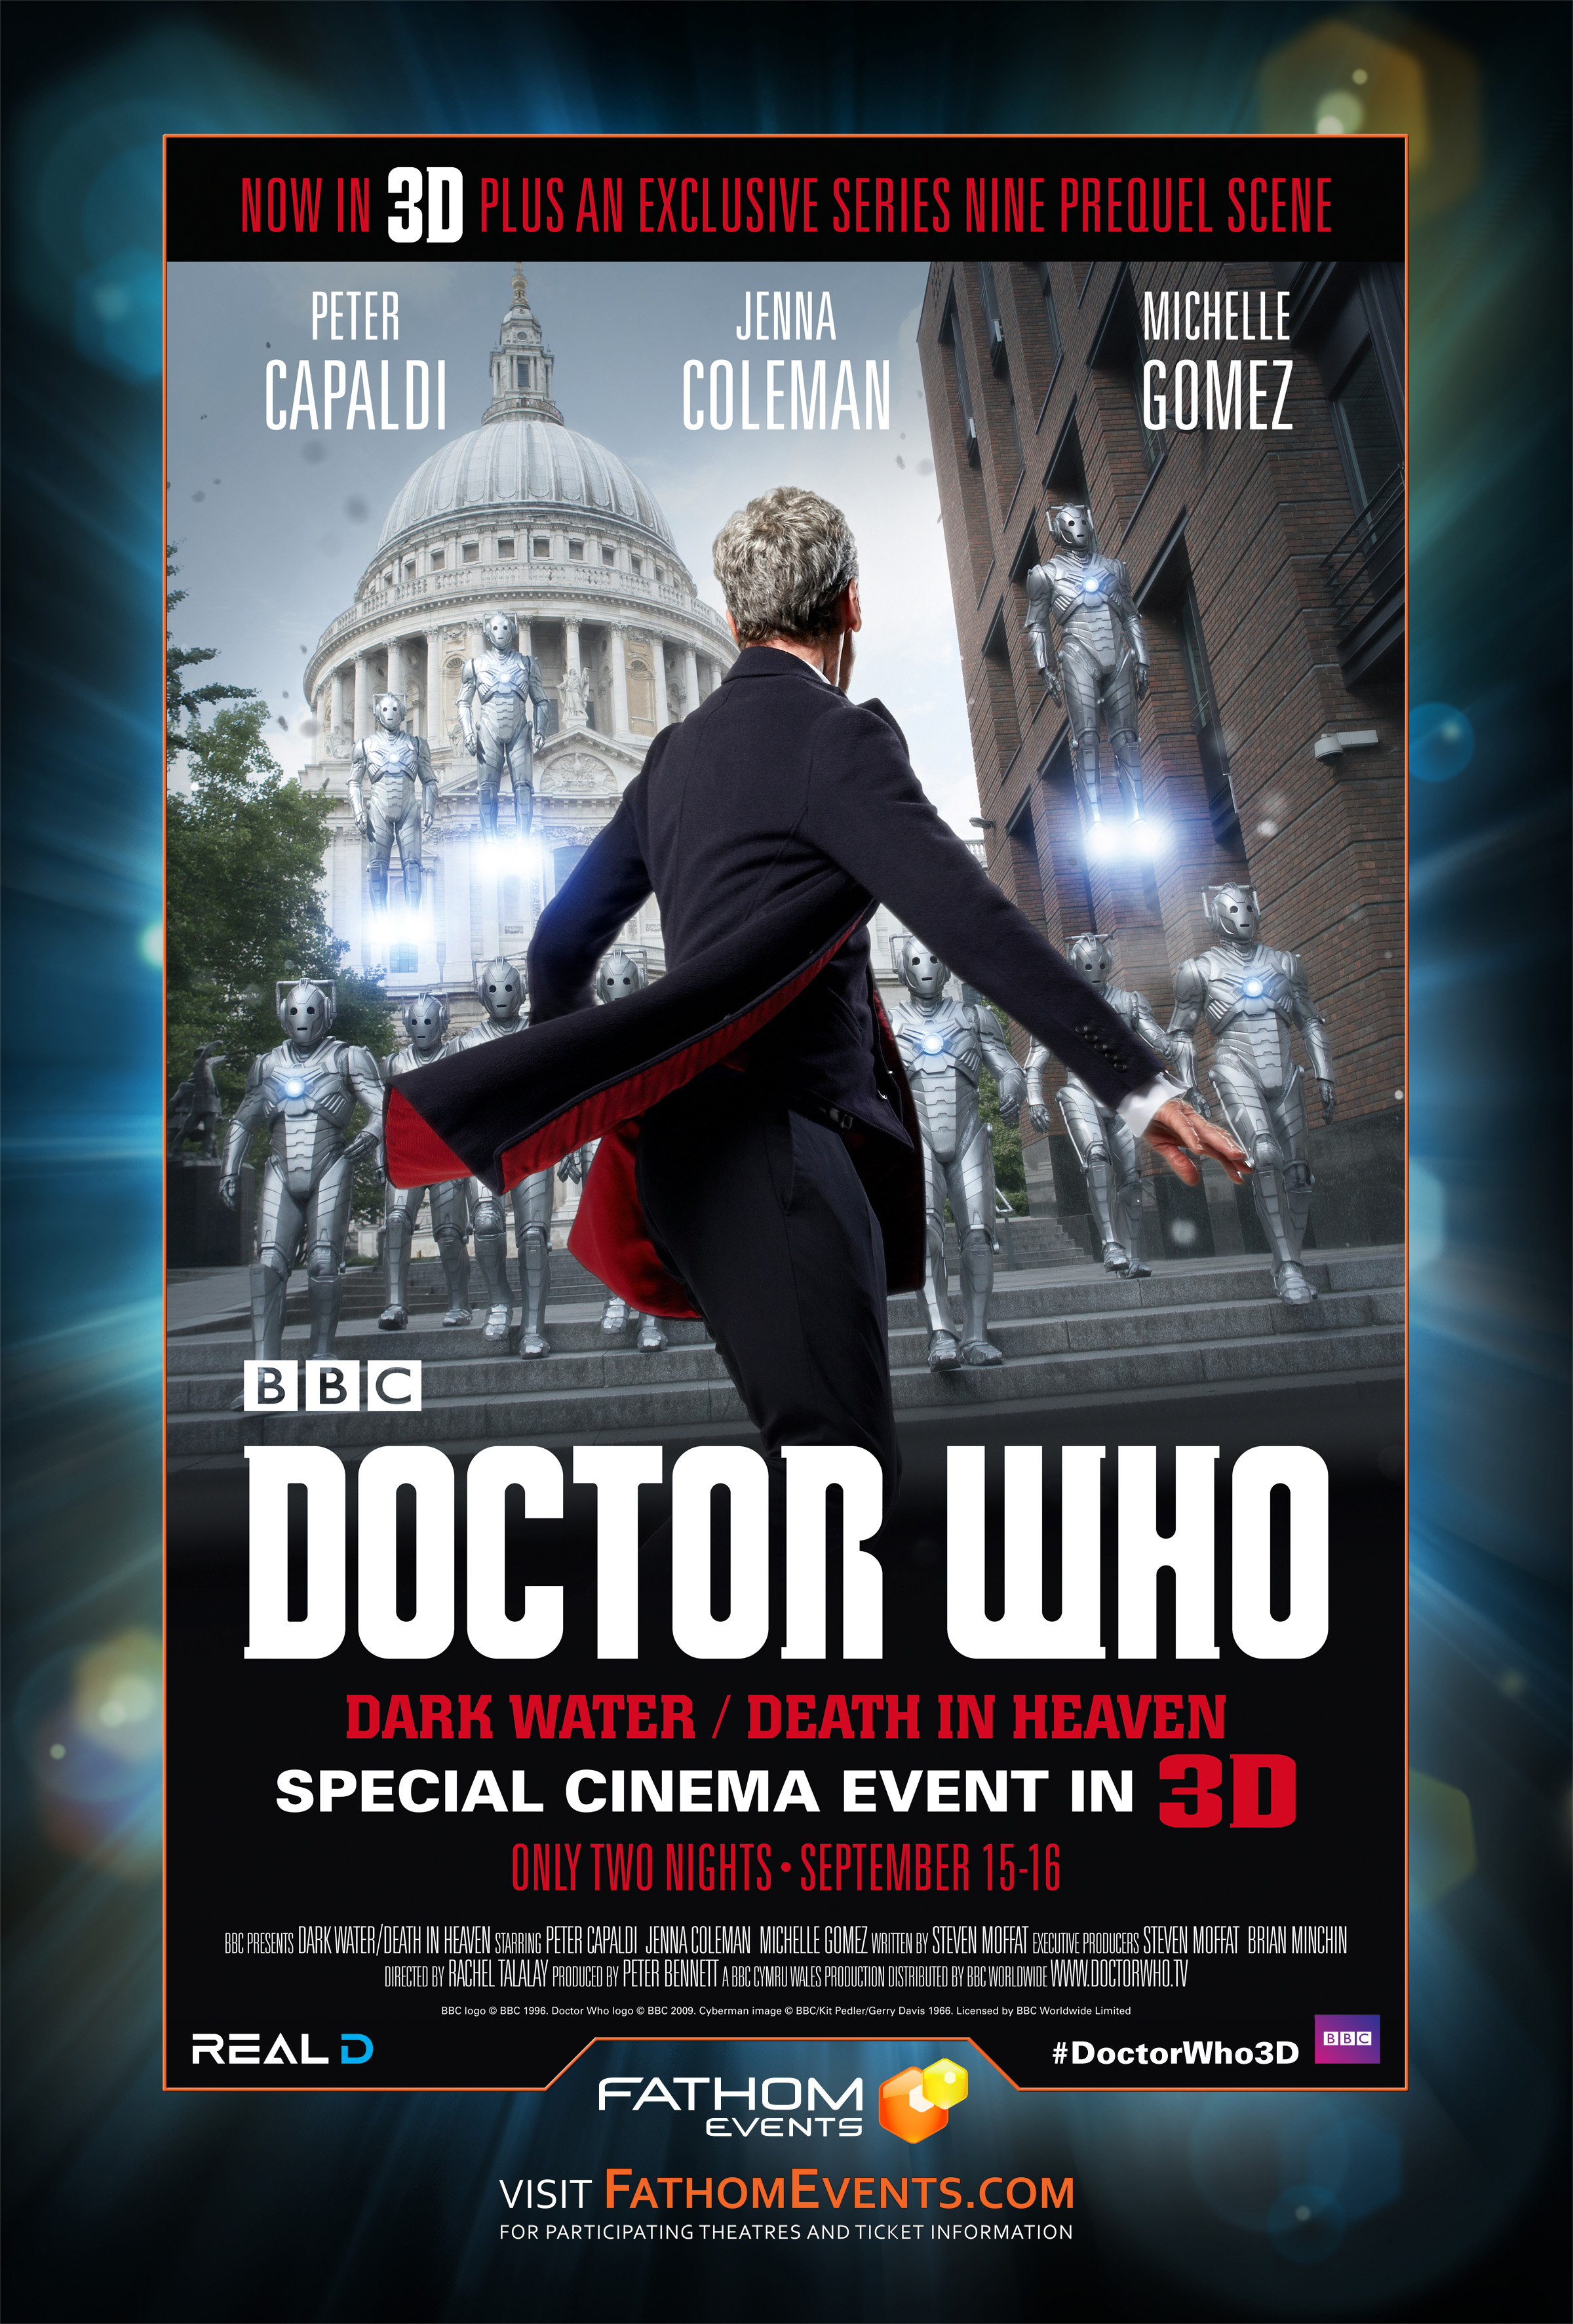 Series 9 premiere poster